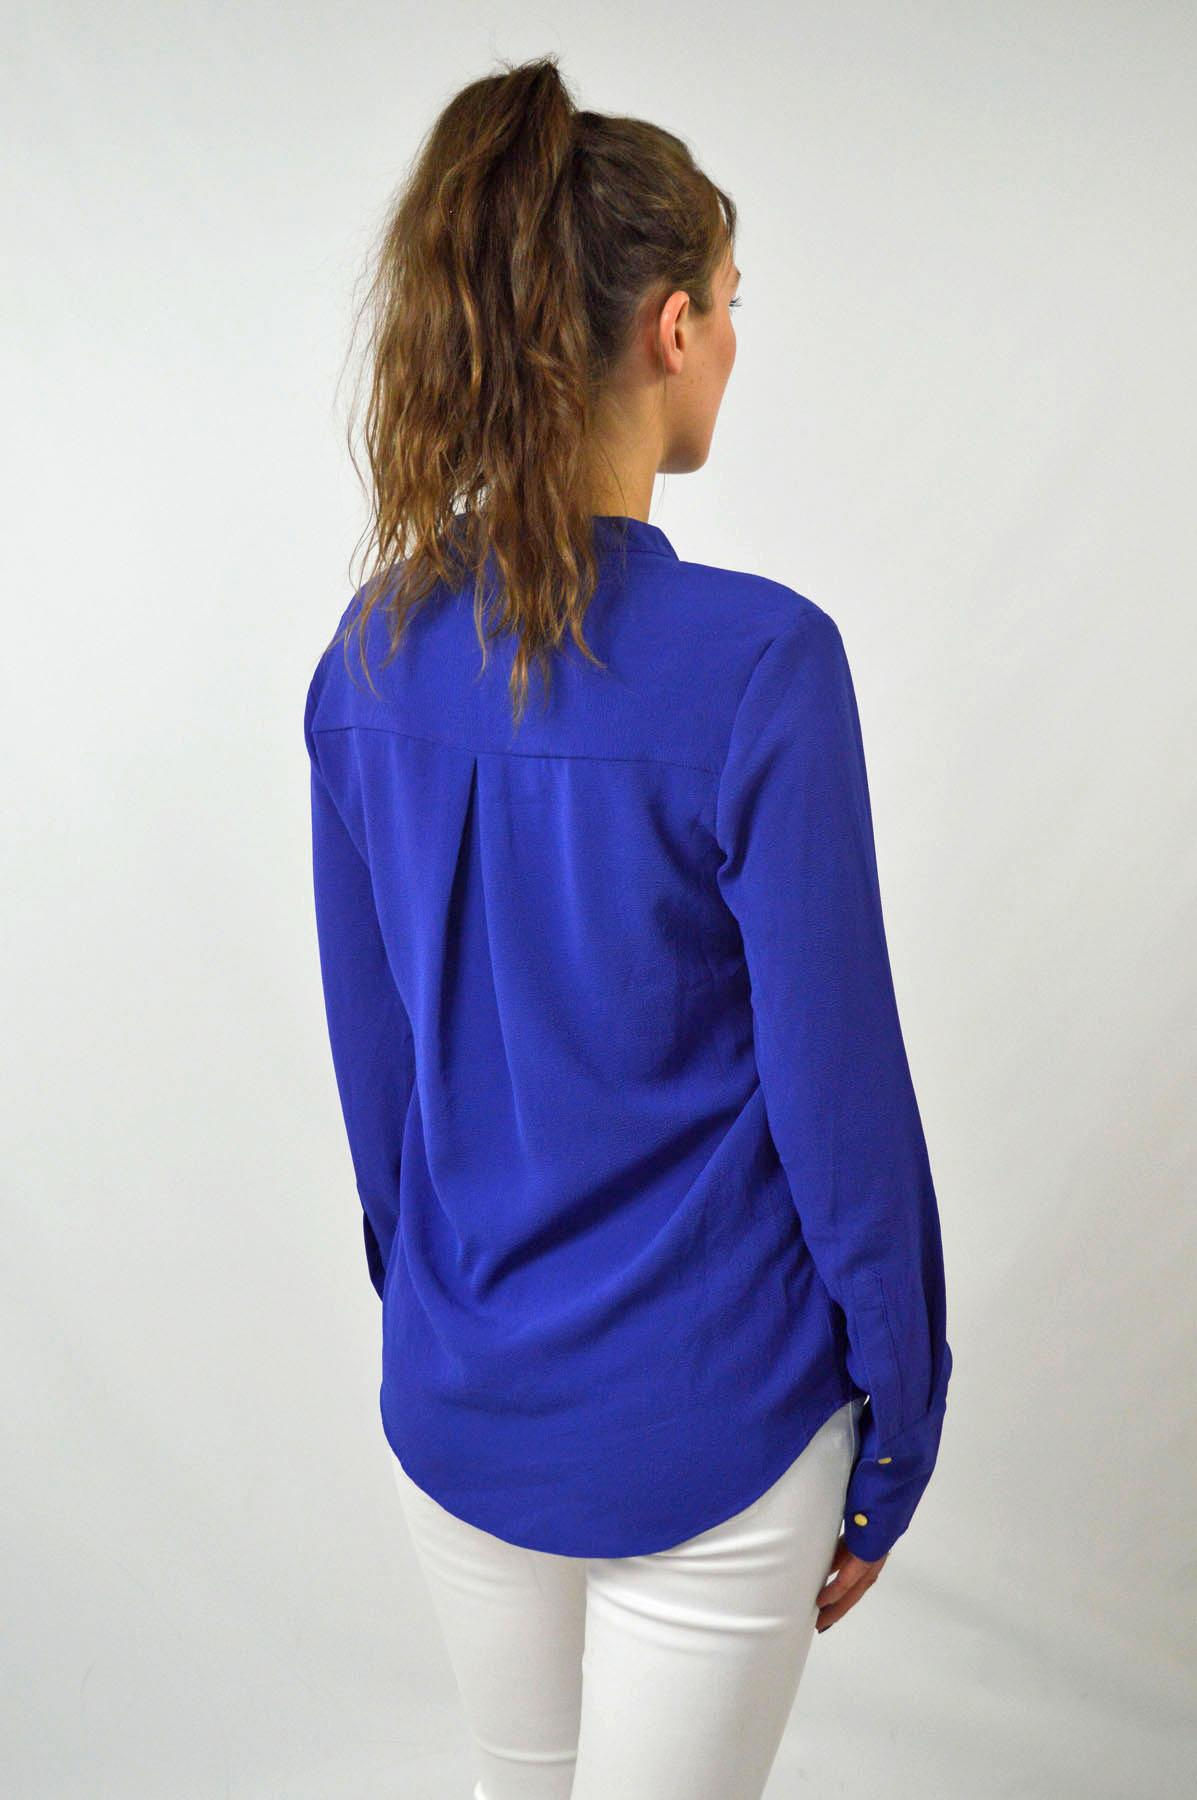 MARKS-amp-SPENCER-Womens-Long-Sleeve-V-Neck-Tunic-Blouse-Size-6-CLEARANCE thumbnail 20